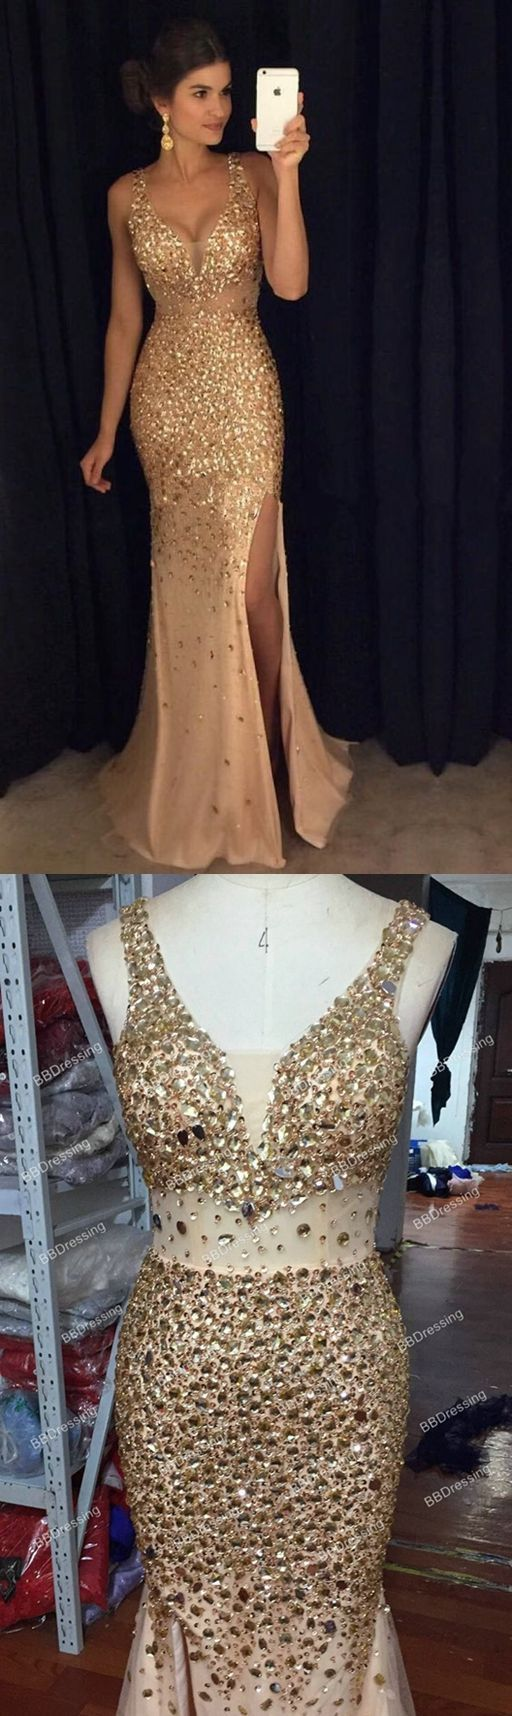 Sexy Spaghetti Straps Evening Dress,Gold Beaded Party Dress,2017 Custom Charming Chiffon Prom Dress,V-Neck Prom Dress · lovingdress · Online Store Powered by Storenvy